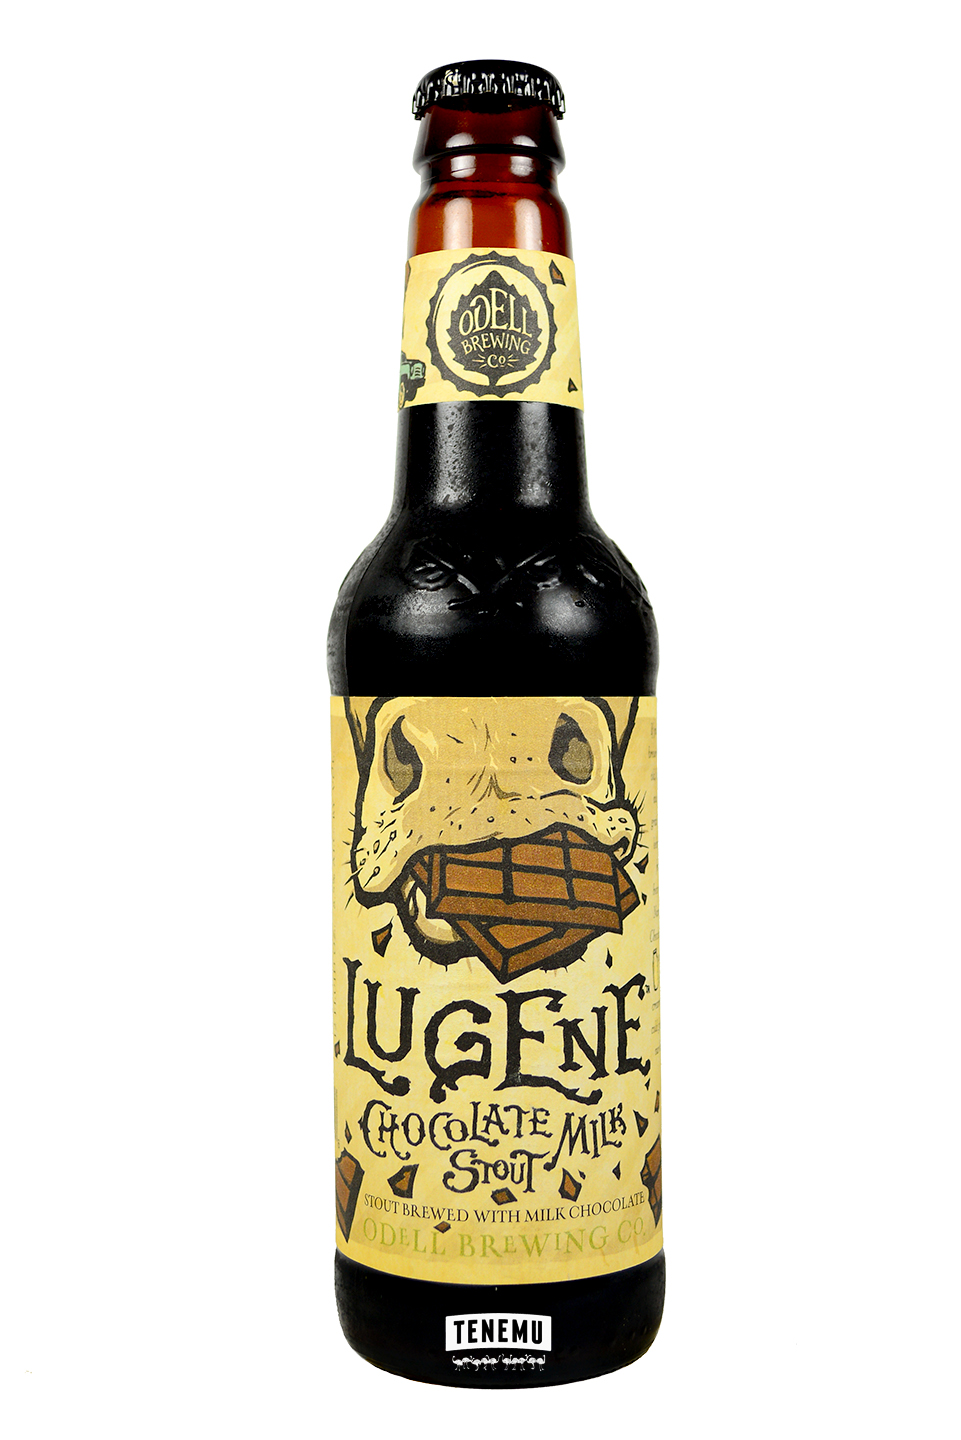 Odell Lugene bottle